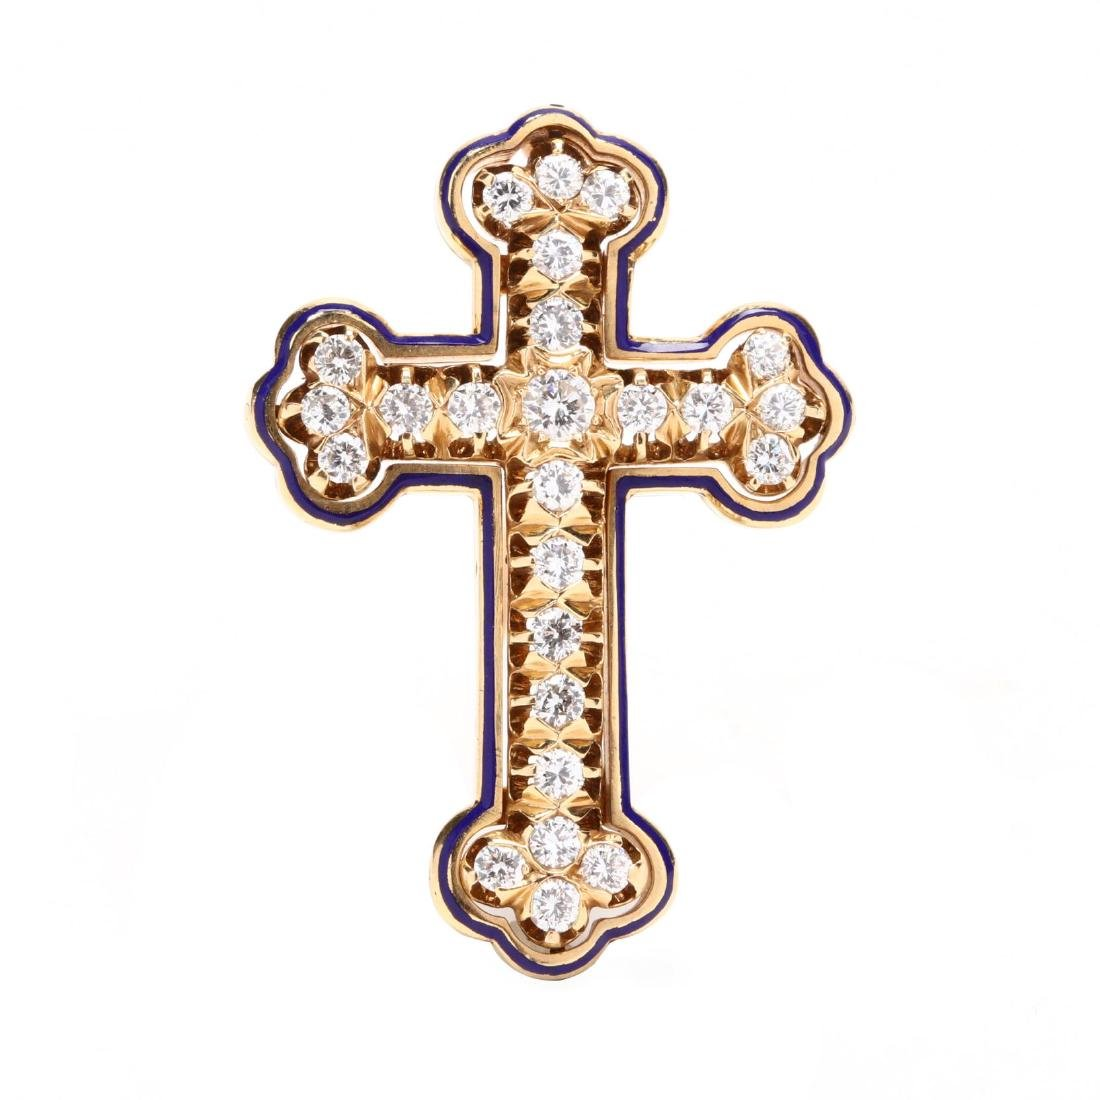 Vintage 14KT Gold, Diamond, and Enamel Cross Brooch /